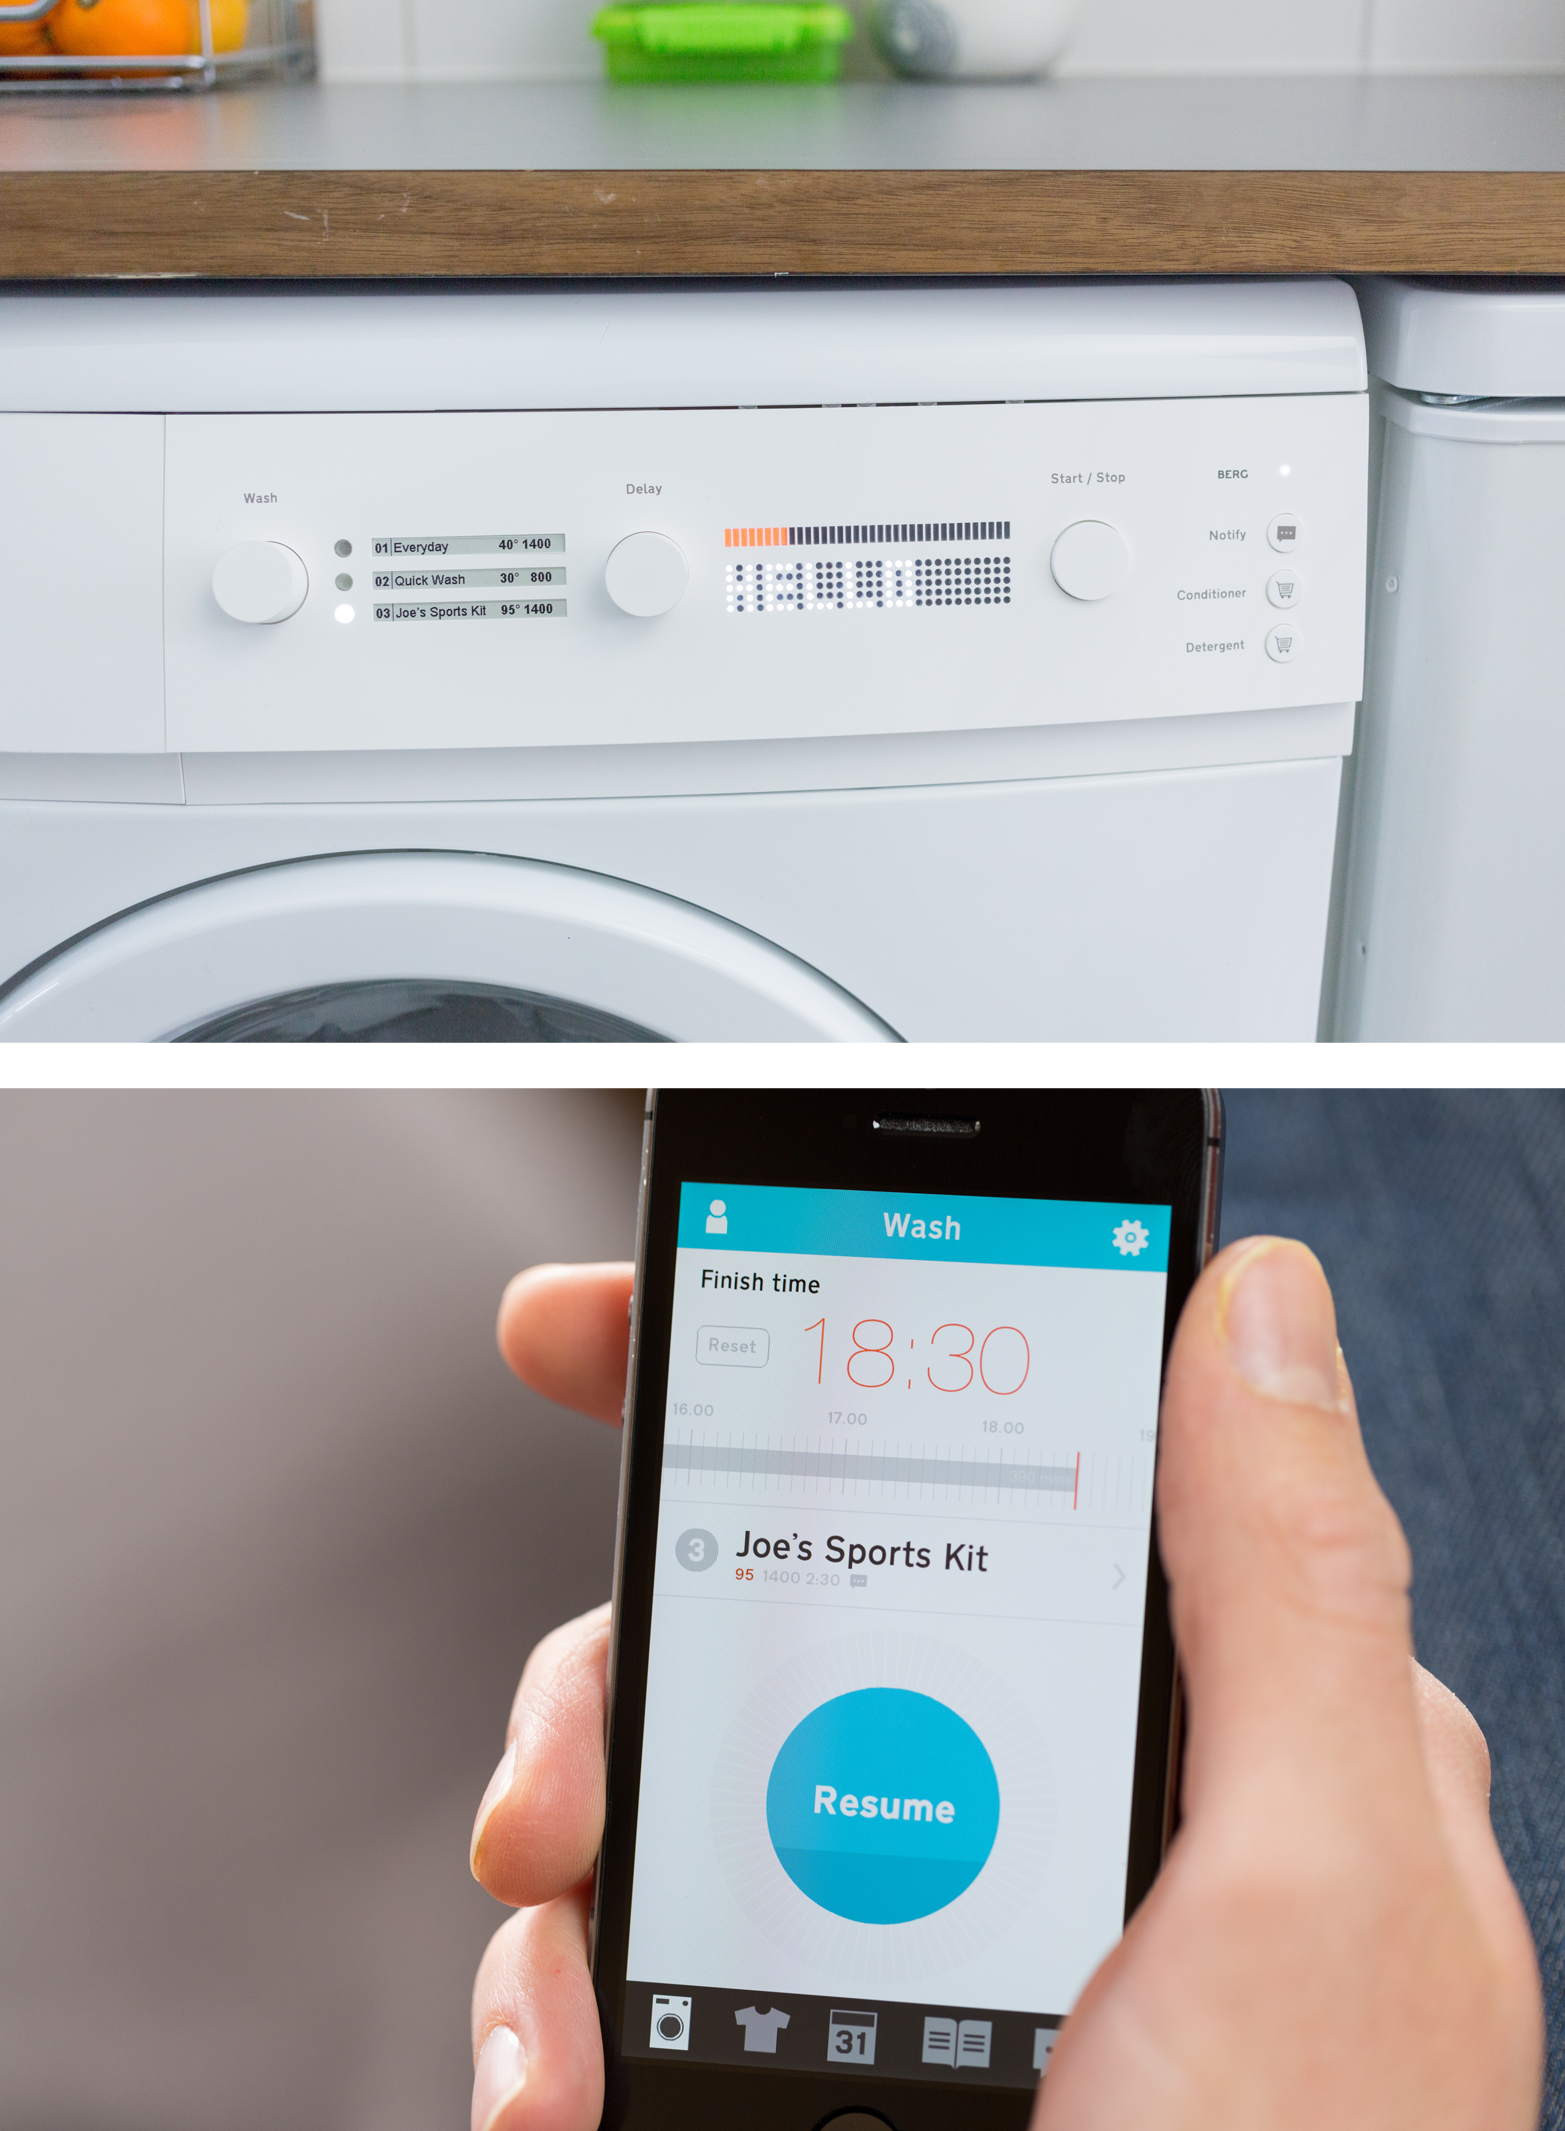 The design and product company BERG produced a beautiful concept prototype for a connected washing machine. The video4 BERG, 2013, Cloudwash, http://vimeo.com/87522764. shows instant responses between the mobile app and washing machine, running over the Internet. In a real-world situation, this could not be guaranteed (images: Timo Arnall of BERG).